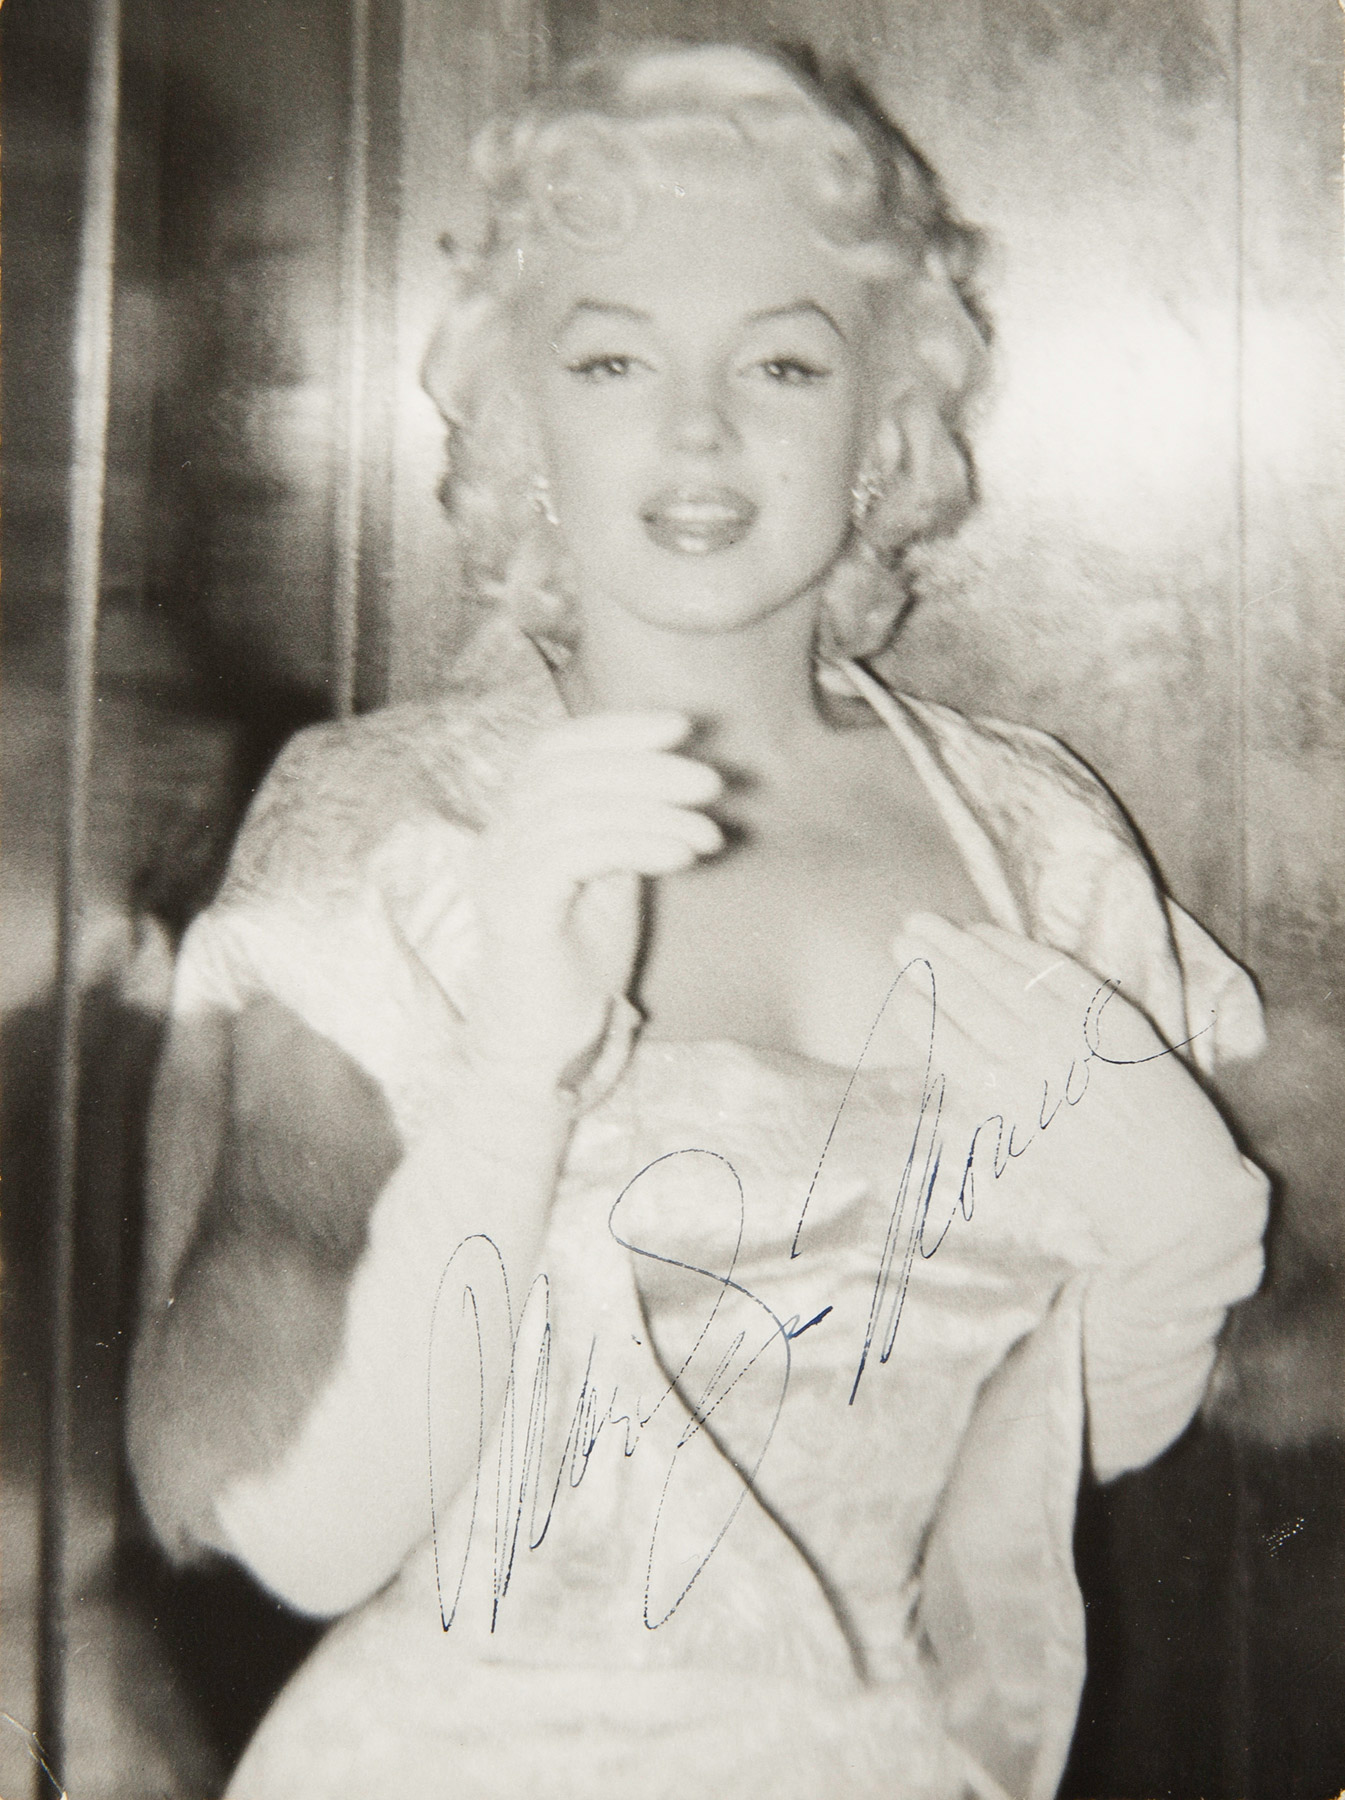 Marilyn Monroe wearing a white brocade gown with matching jacket and white evening gloves as she attended the New York City premiere of East of Eden on March 9, 1955.